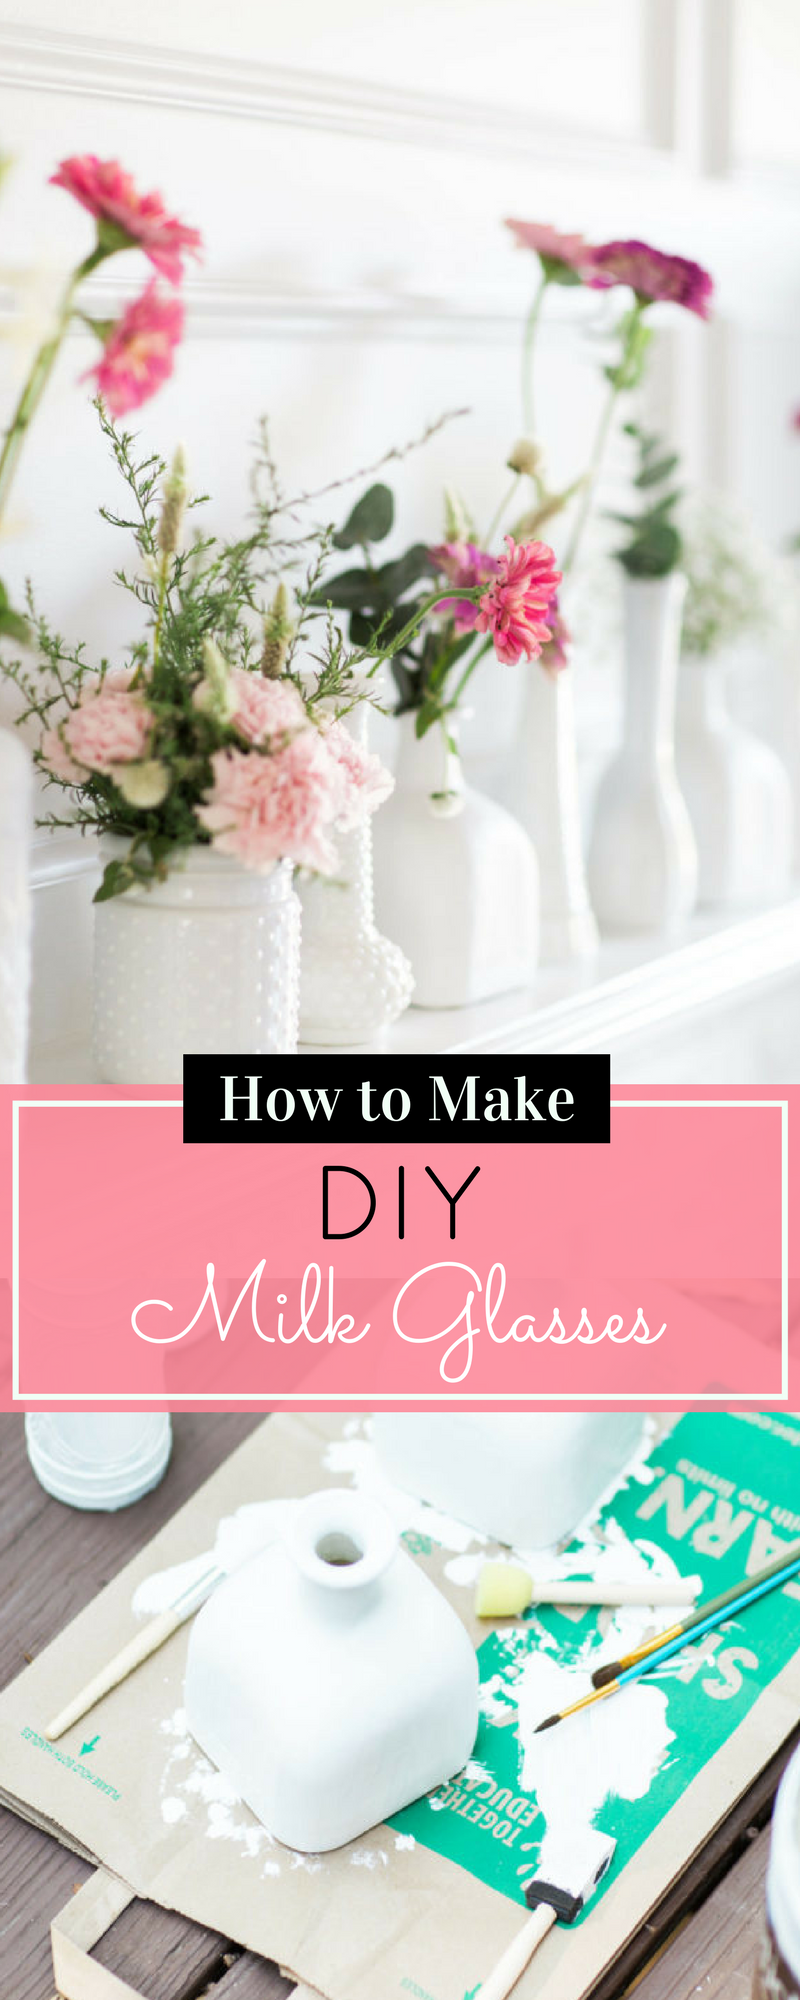 How to Make DIY Milk Glass. Click through for the easy step-by-step guide to making your own inexpensive version. | glitterinc.com | @glitterinc